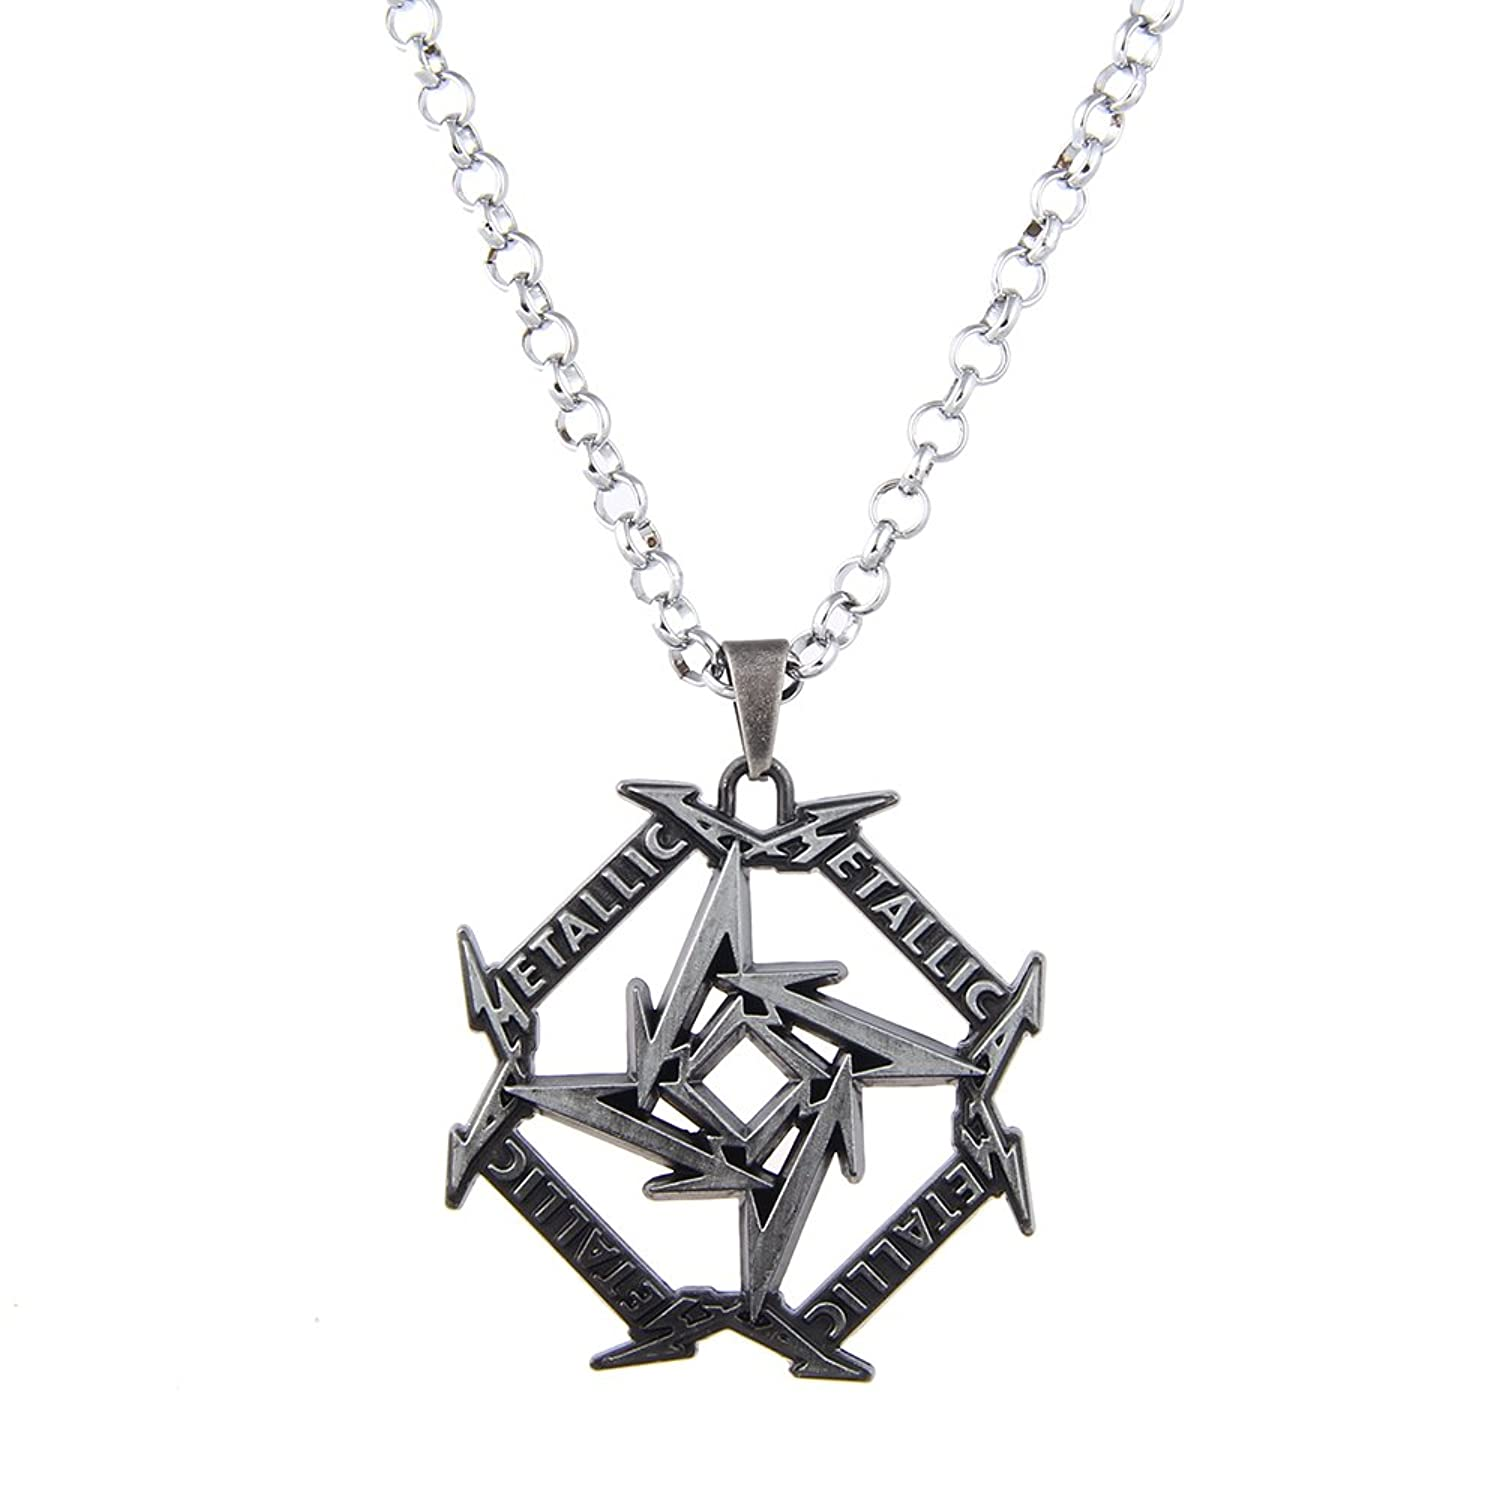 Lureme Punk Jewelry Metallica Band Signs Geometry Pendant Necklace (nl005613)